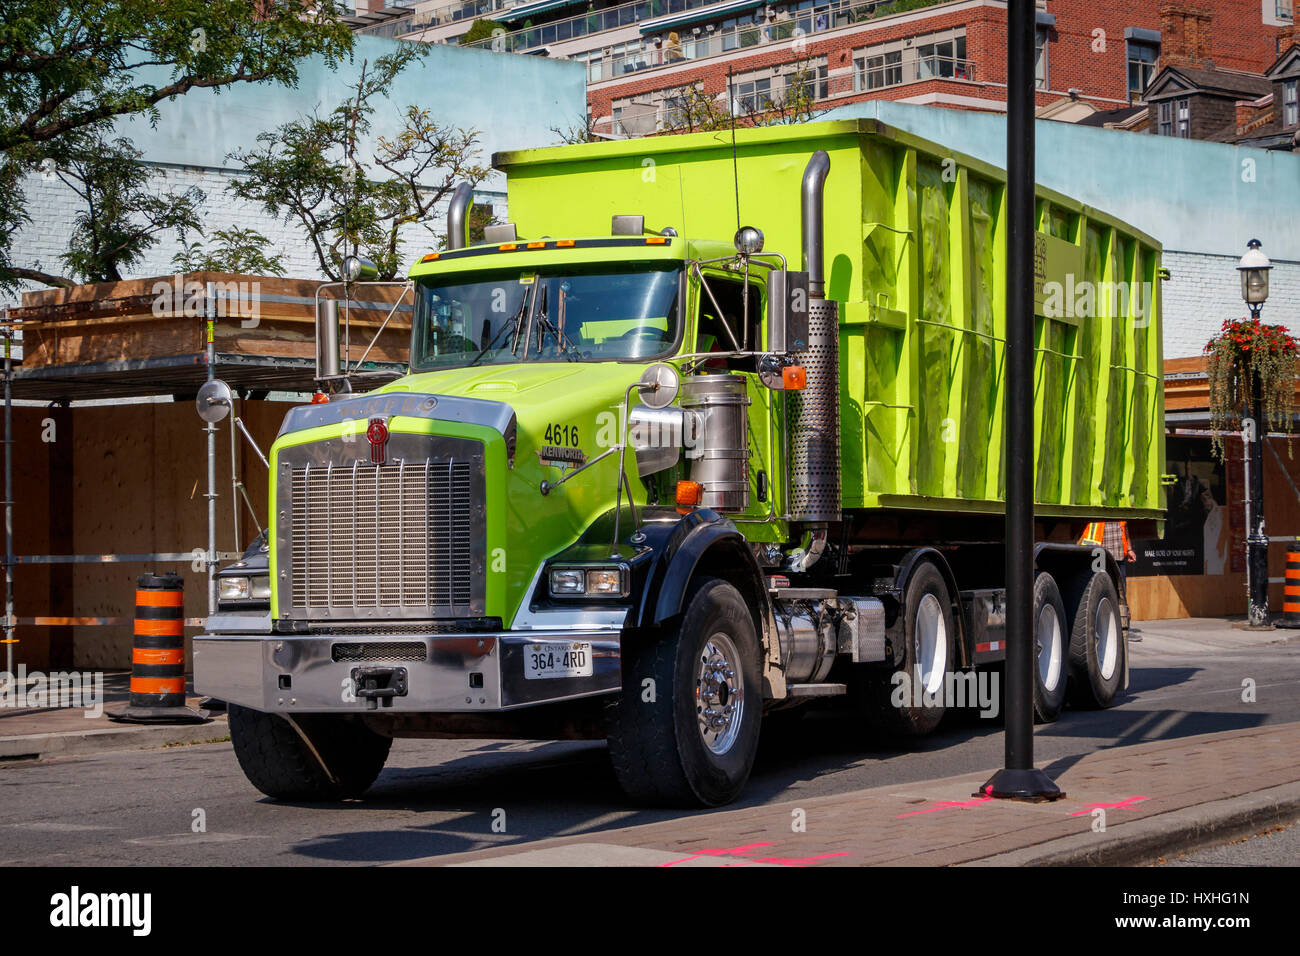 An Anpro Kenworth truck with hopper body in green livery. Toronto, Ontario, Canada. - Stock Image